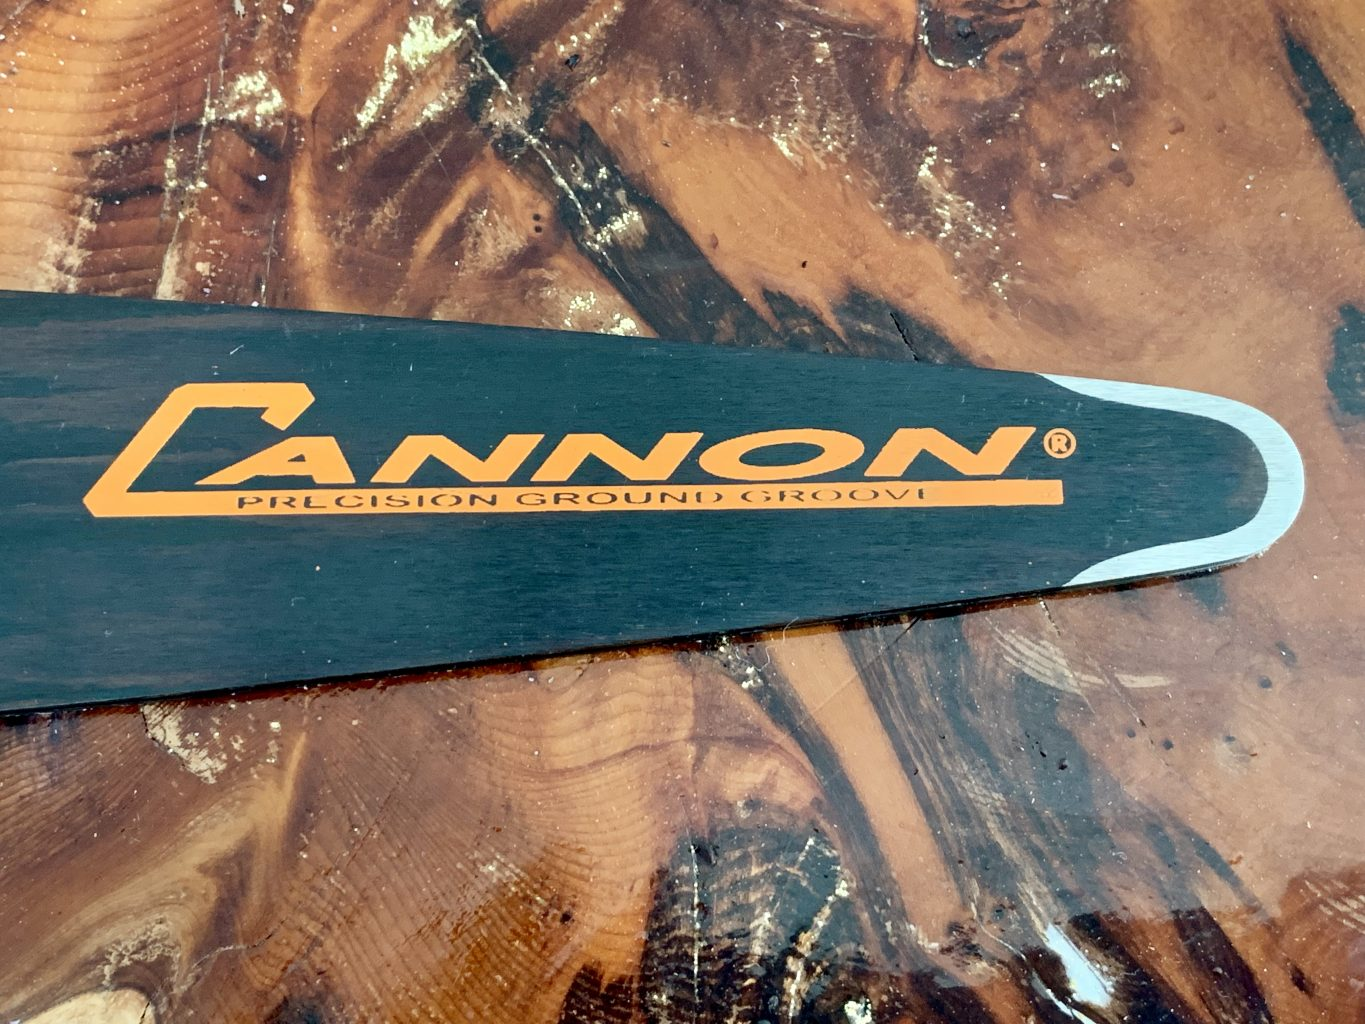 """CCT-H1-28-50 Cannon Carving Toonie Tip 28""""[71cm] 3/8 Lo Pro .050 90 drive links or .325 .050 102 drive links or 1/4 .050 130 drive links"""